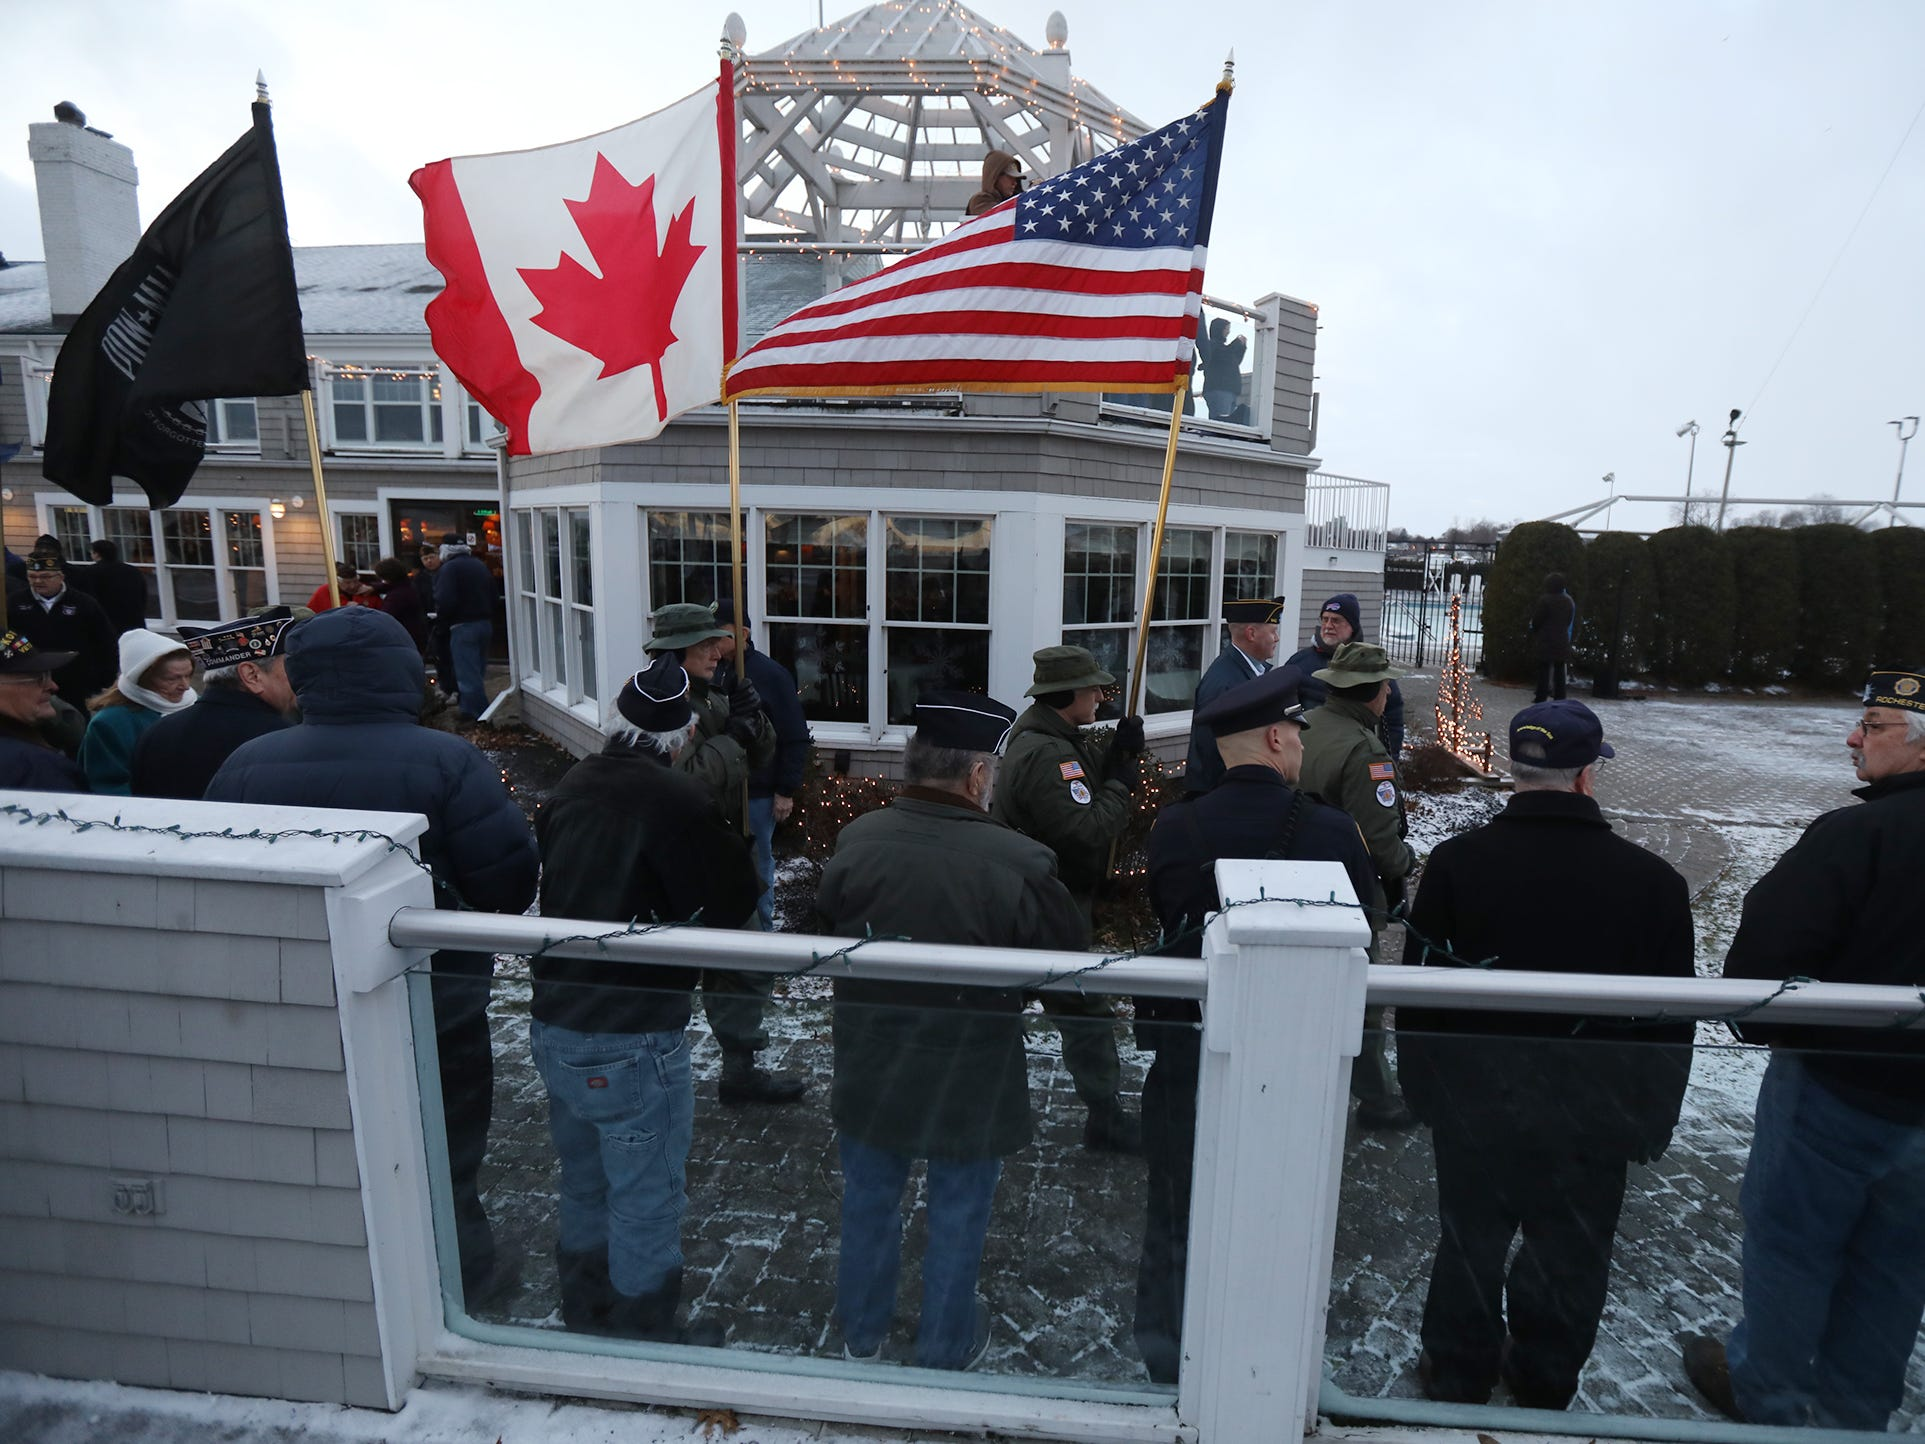 Remembering those who died at Pearl Harbor